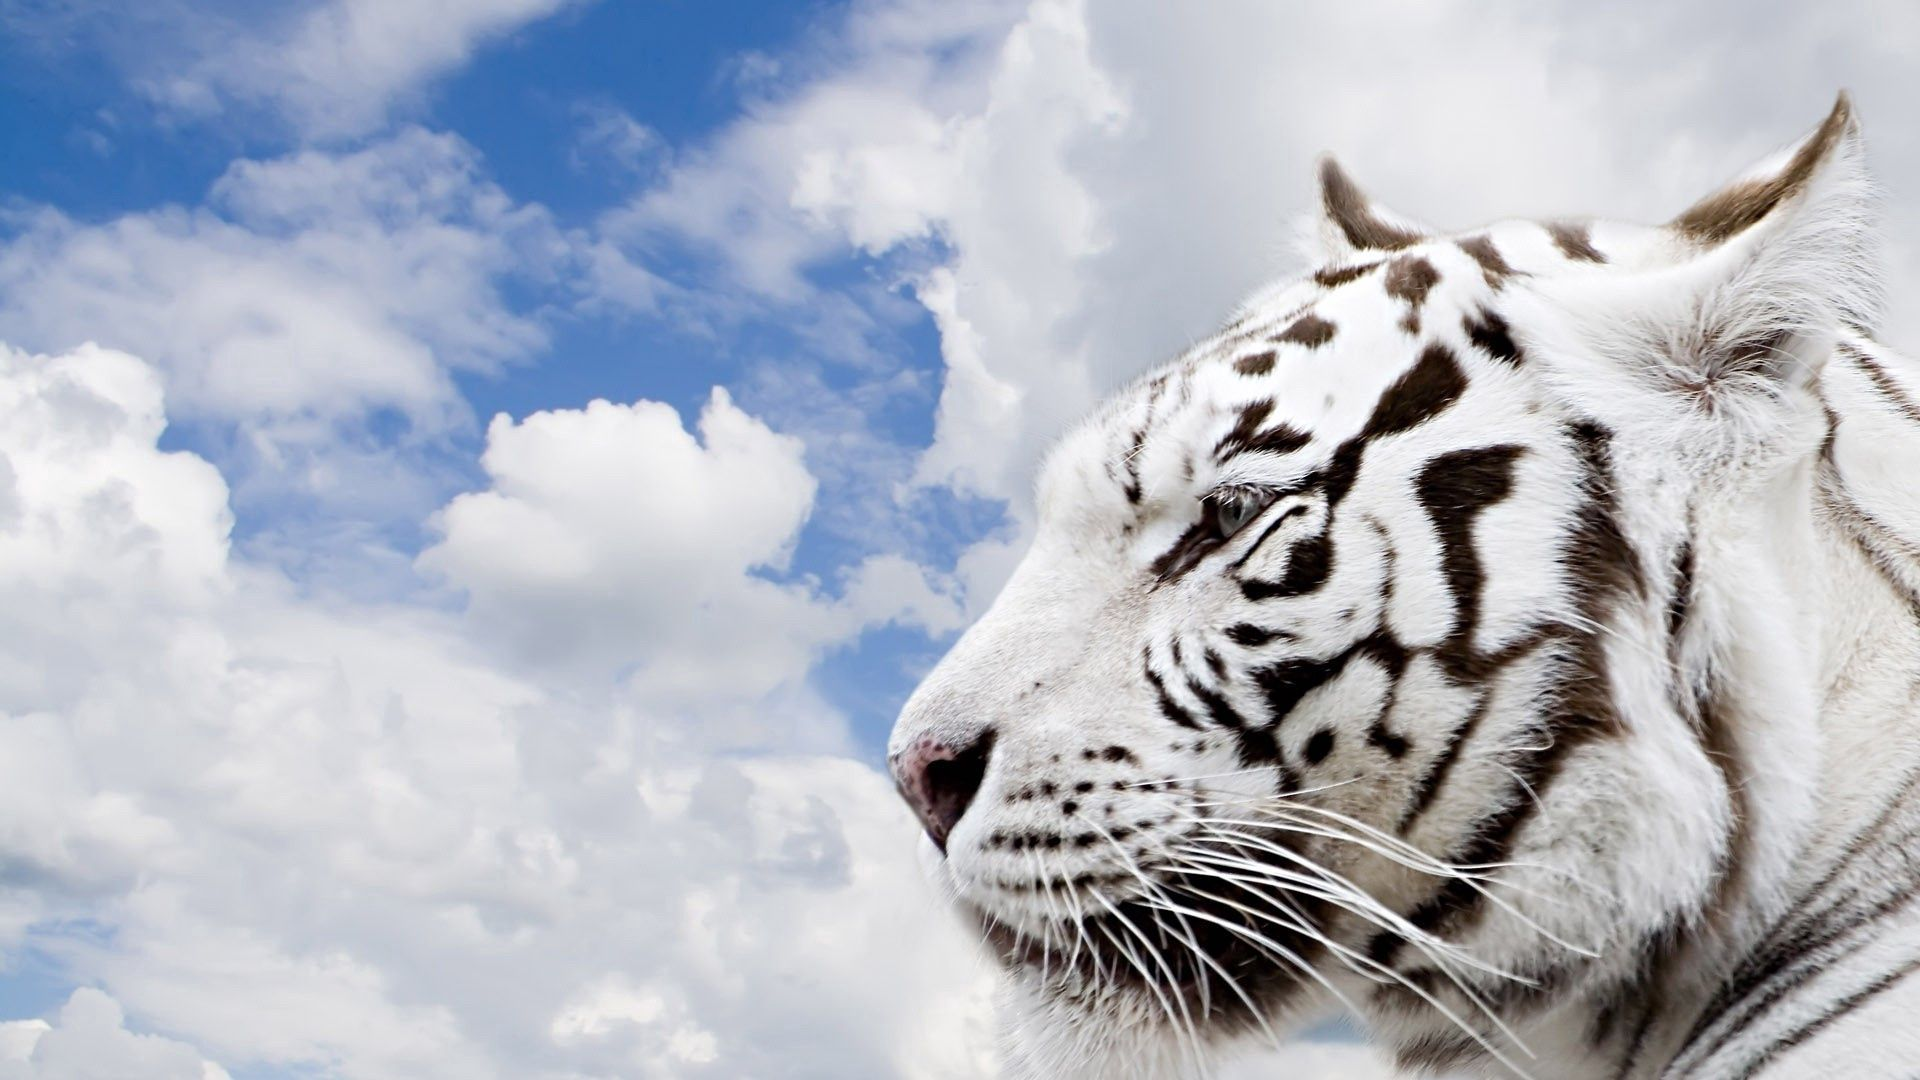 56609 download wallpaper Animals, Tiger, Sky, Clouds, Muzzle, Predator screensavers and pictures for free